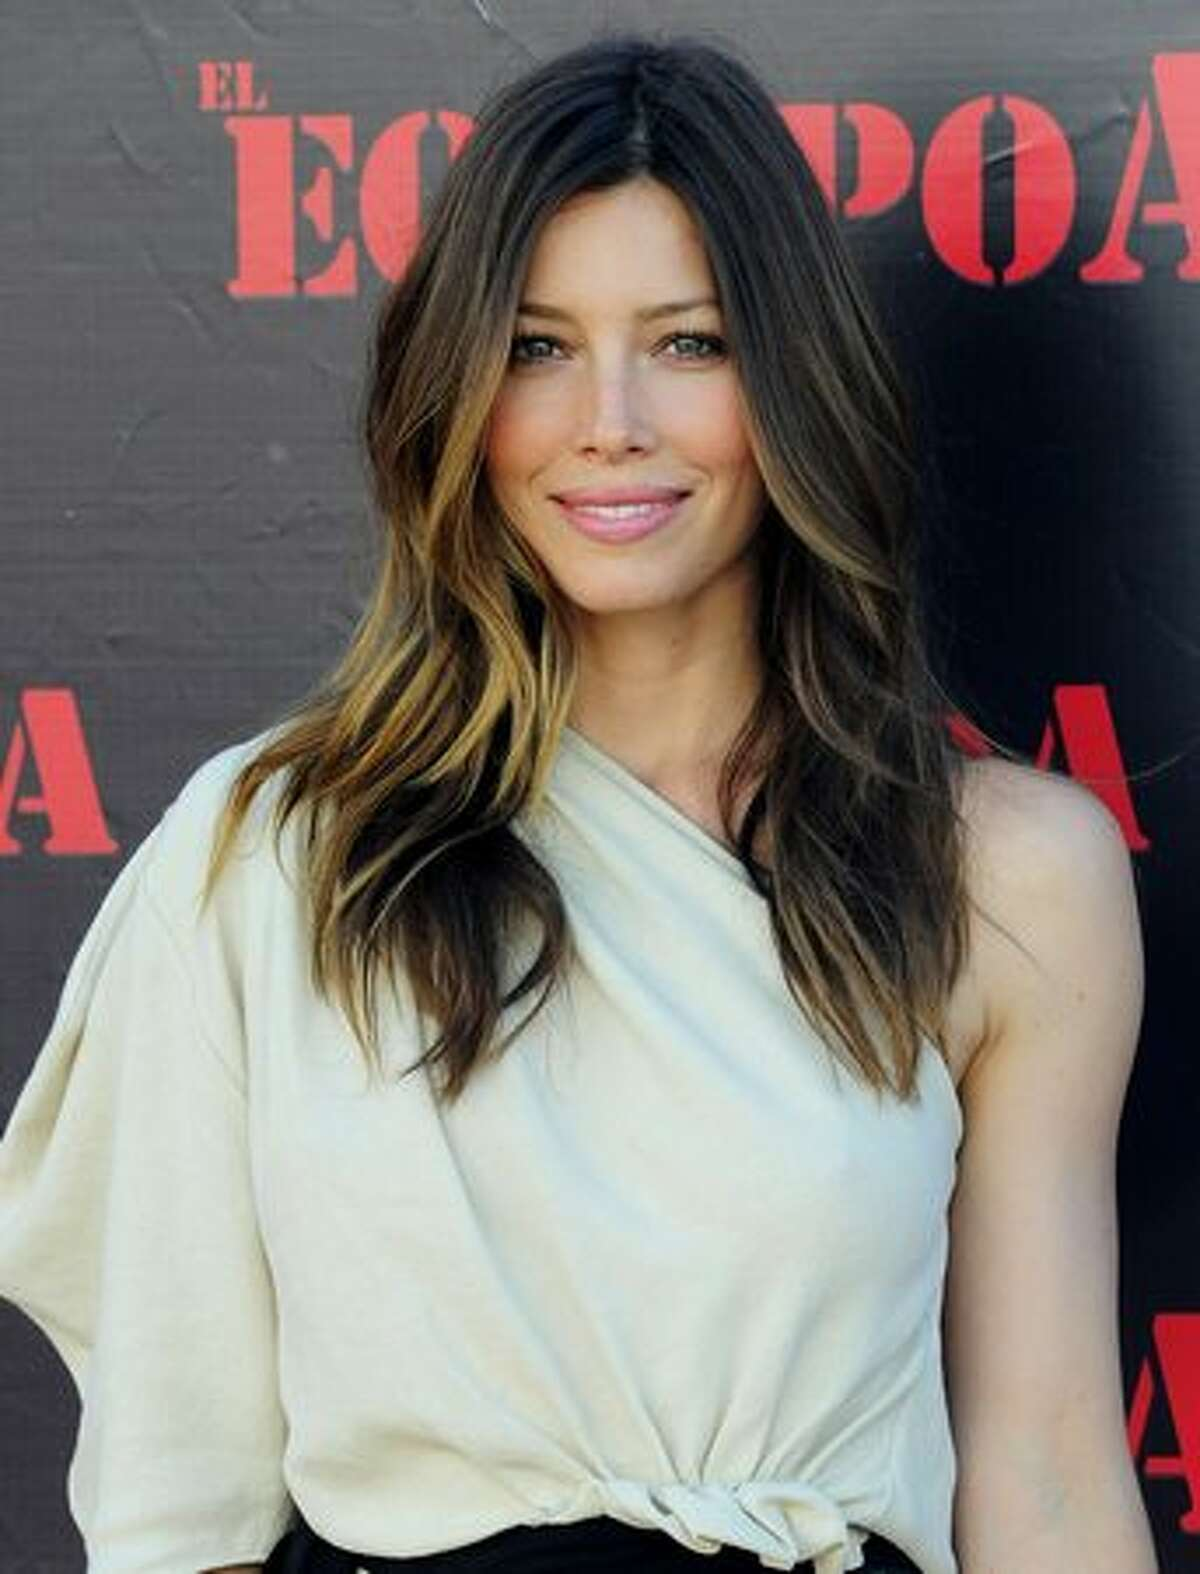 """Actress Jessica Biel attends """"The A-Team"""" photocall at ME Hotel."""